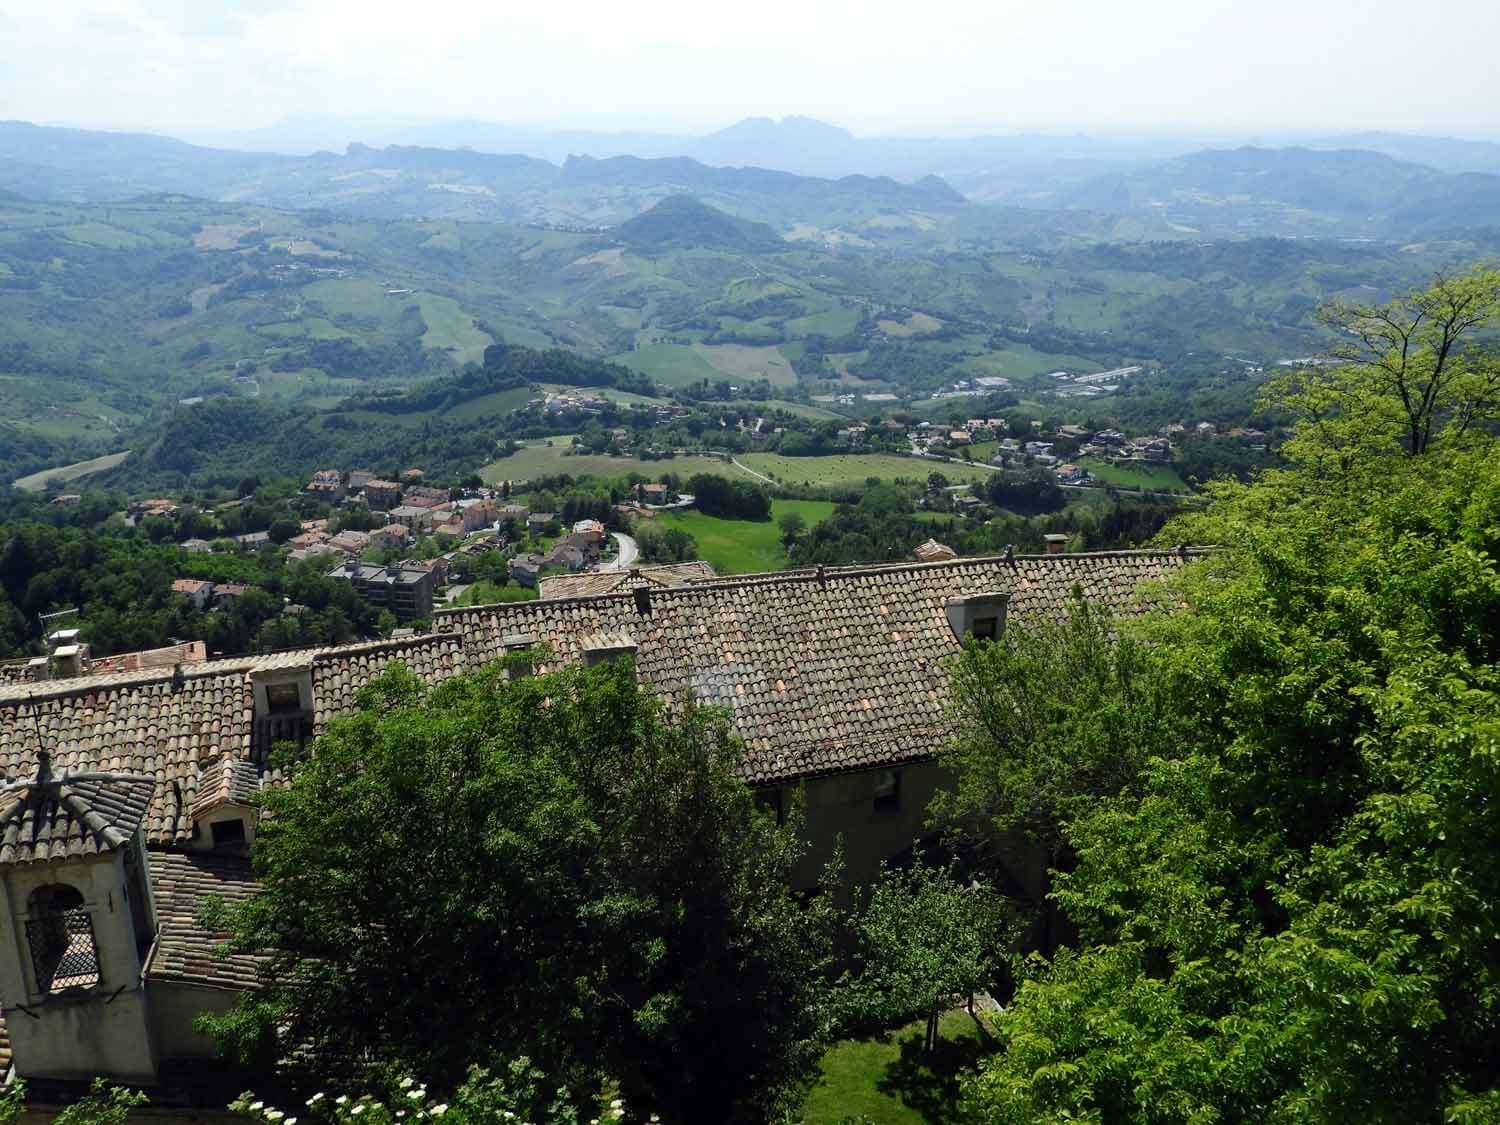 san-marino-micro-nation-green-hills-stone-buildings.jpg